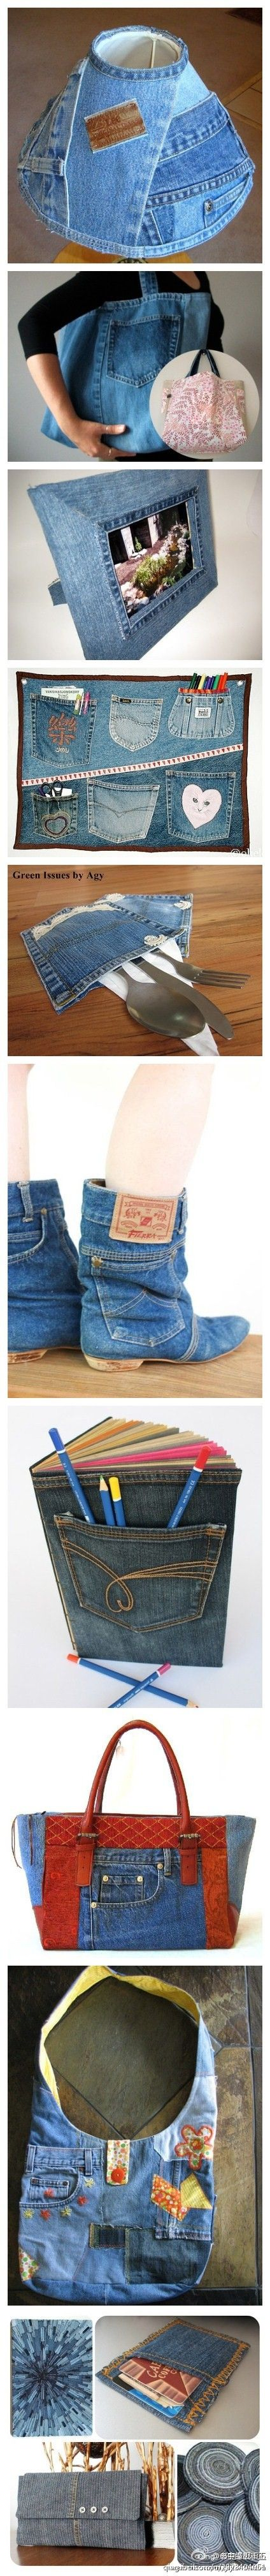 Re-purpose jeans into blue jeans boots http://haveheartdaily.net